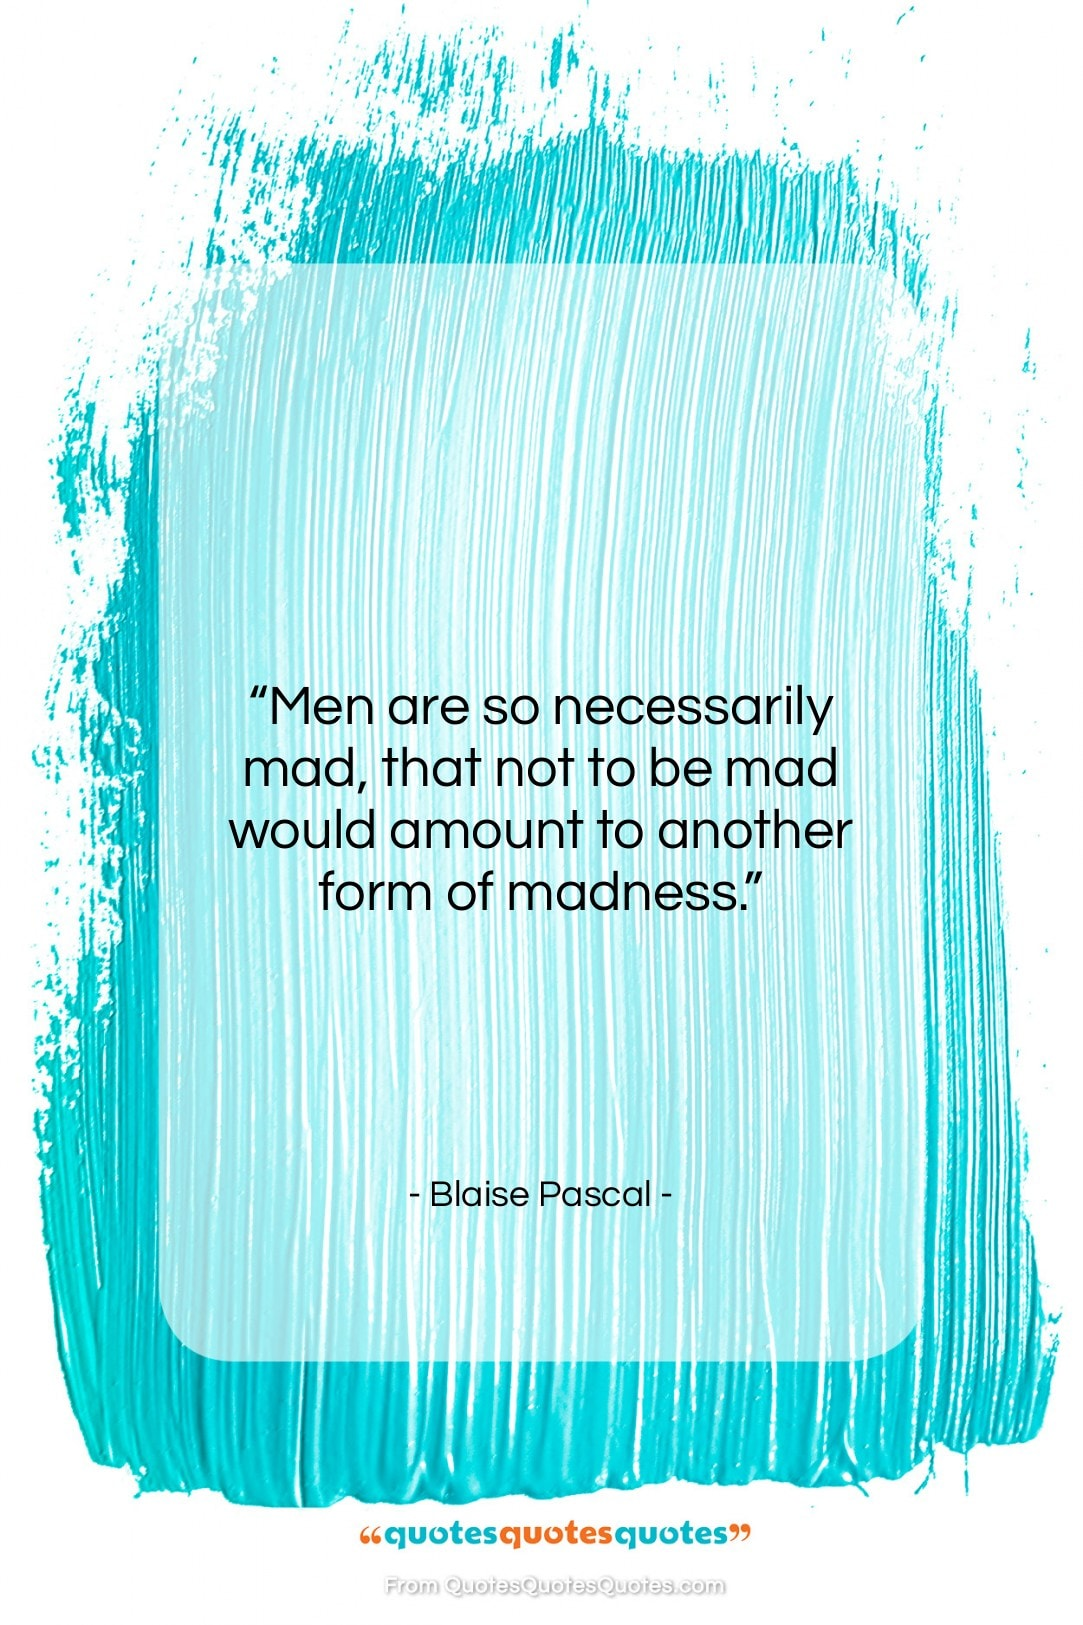 """Blaise Pascal quote: """"Men are so necessarily mad, that not…""""- at QuotesQuotesQuotes.com"""